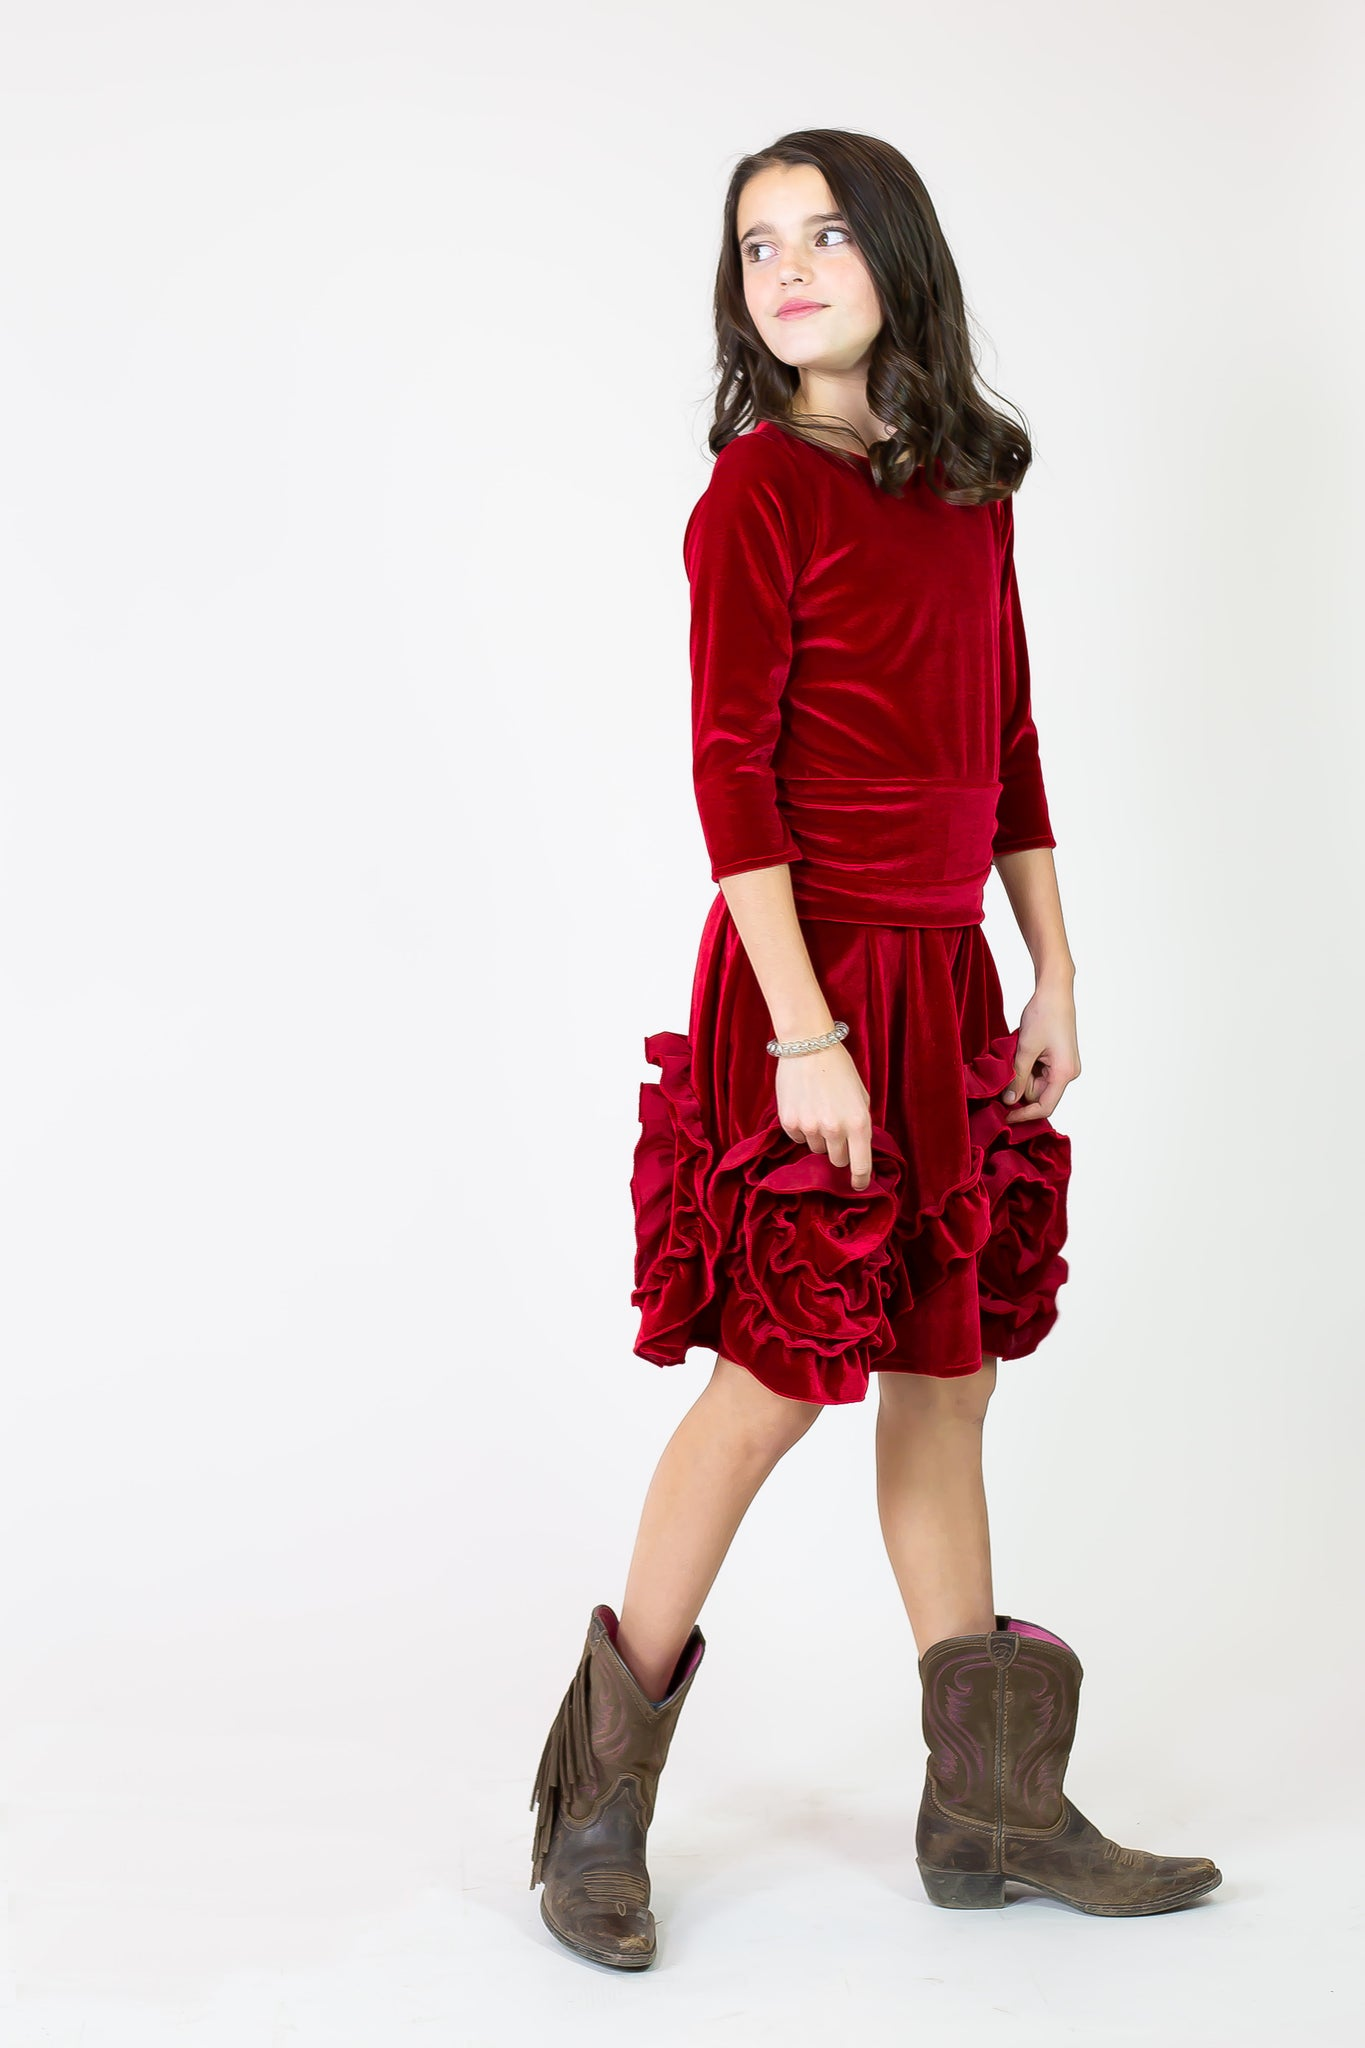 Holiday Red Velvet Boots Dress - Pre-sale